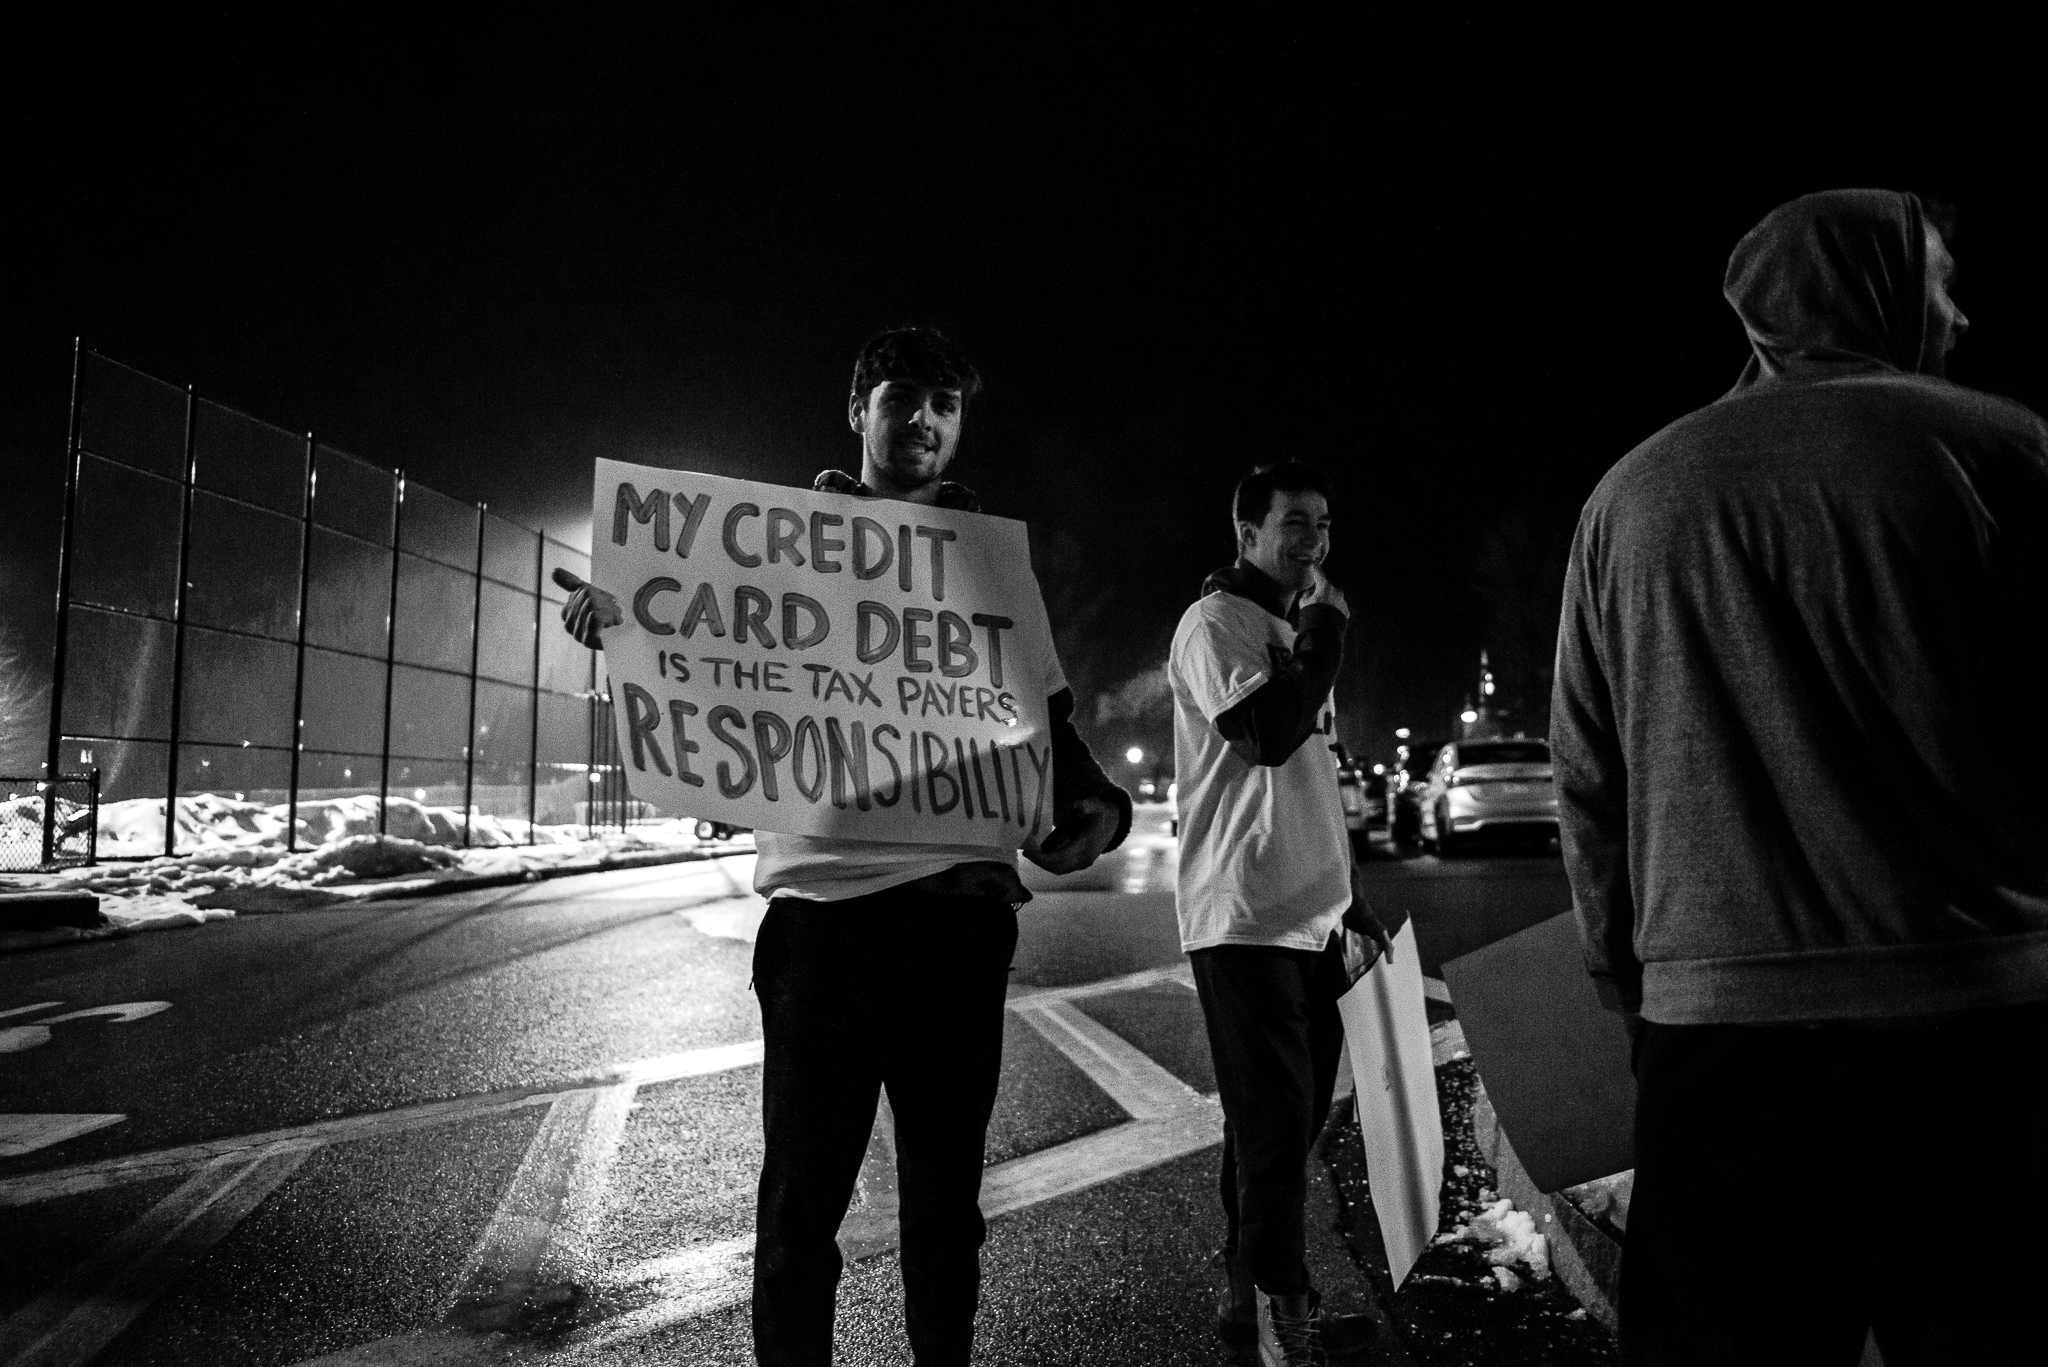 Anti-Bernie protesters rally outside of a Bernie Sanders event in Manchester New Hampshire. February 11, 2020. Photo: Lance Monotone.